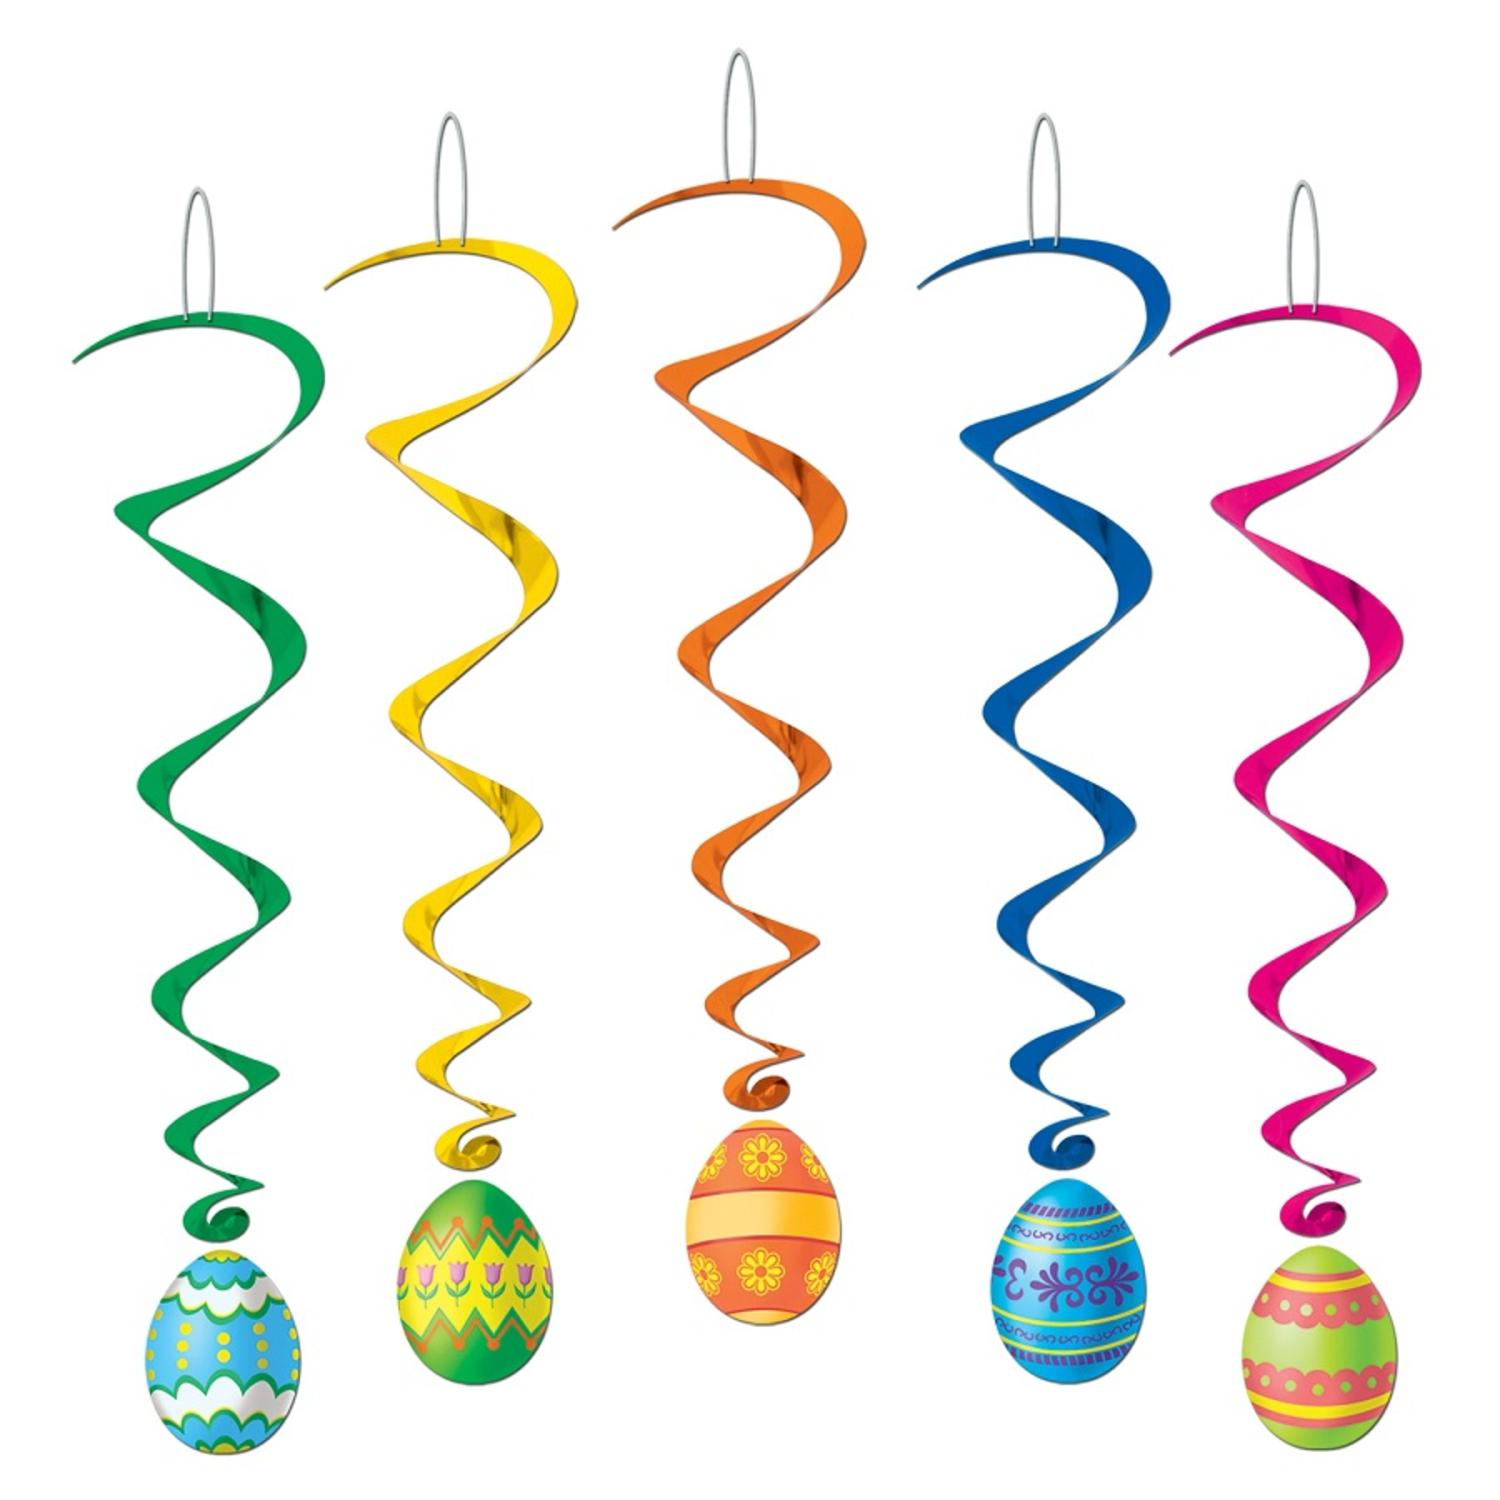 Club Pack of 30 Vibrant Easter Egg Whirls Hanging Decorations 3.25